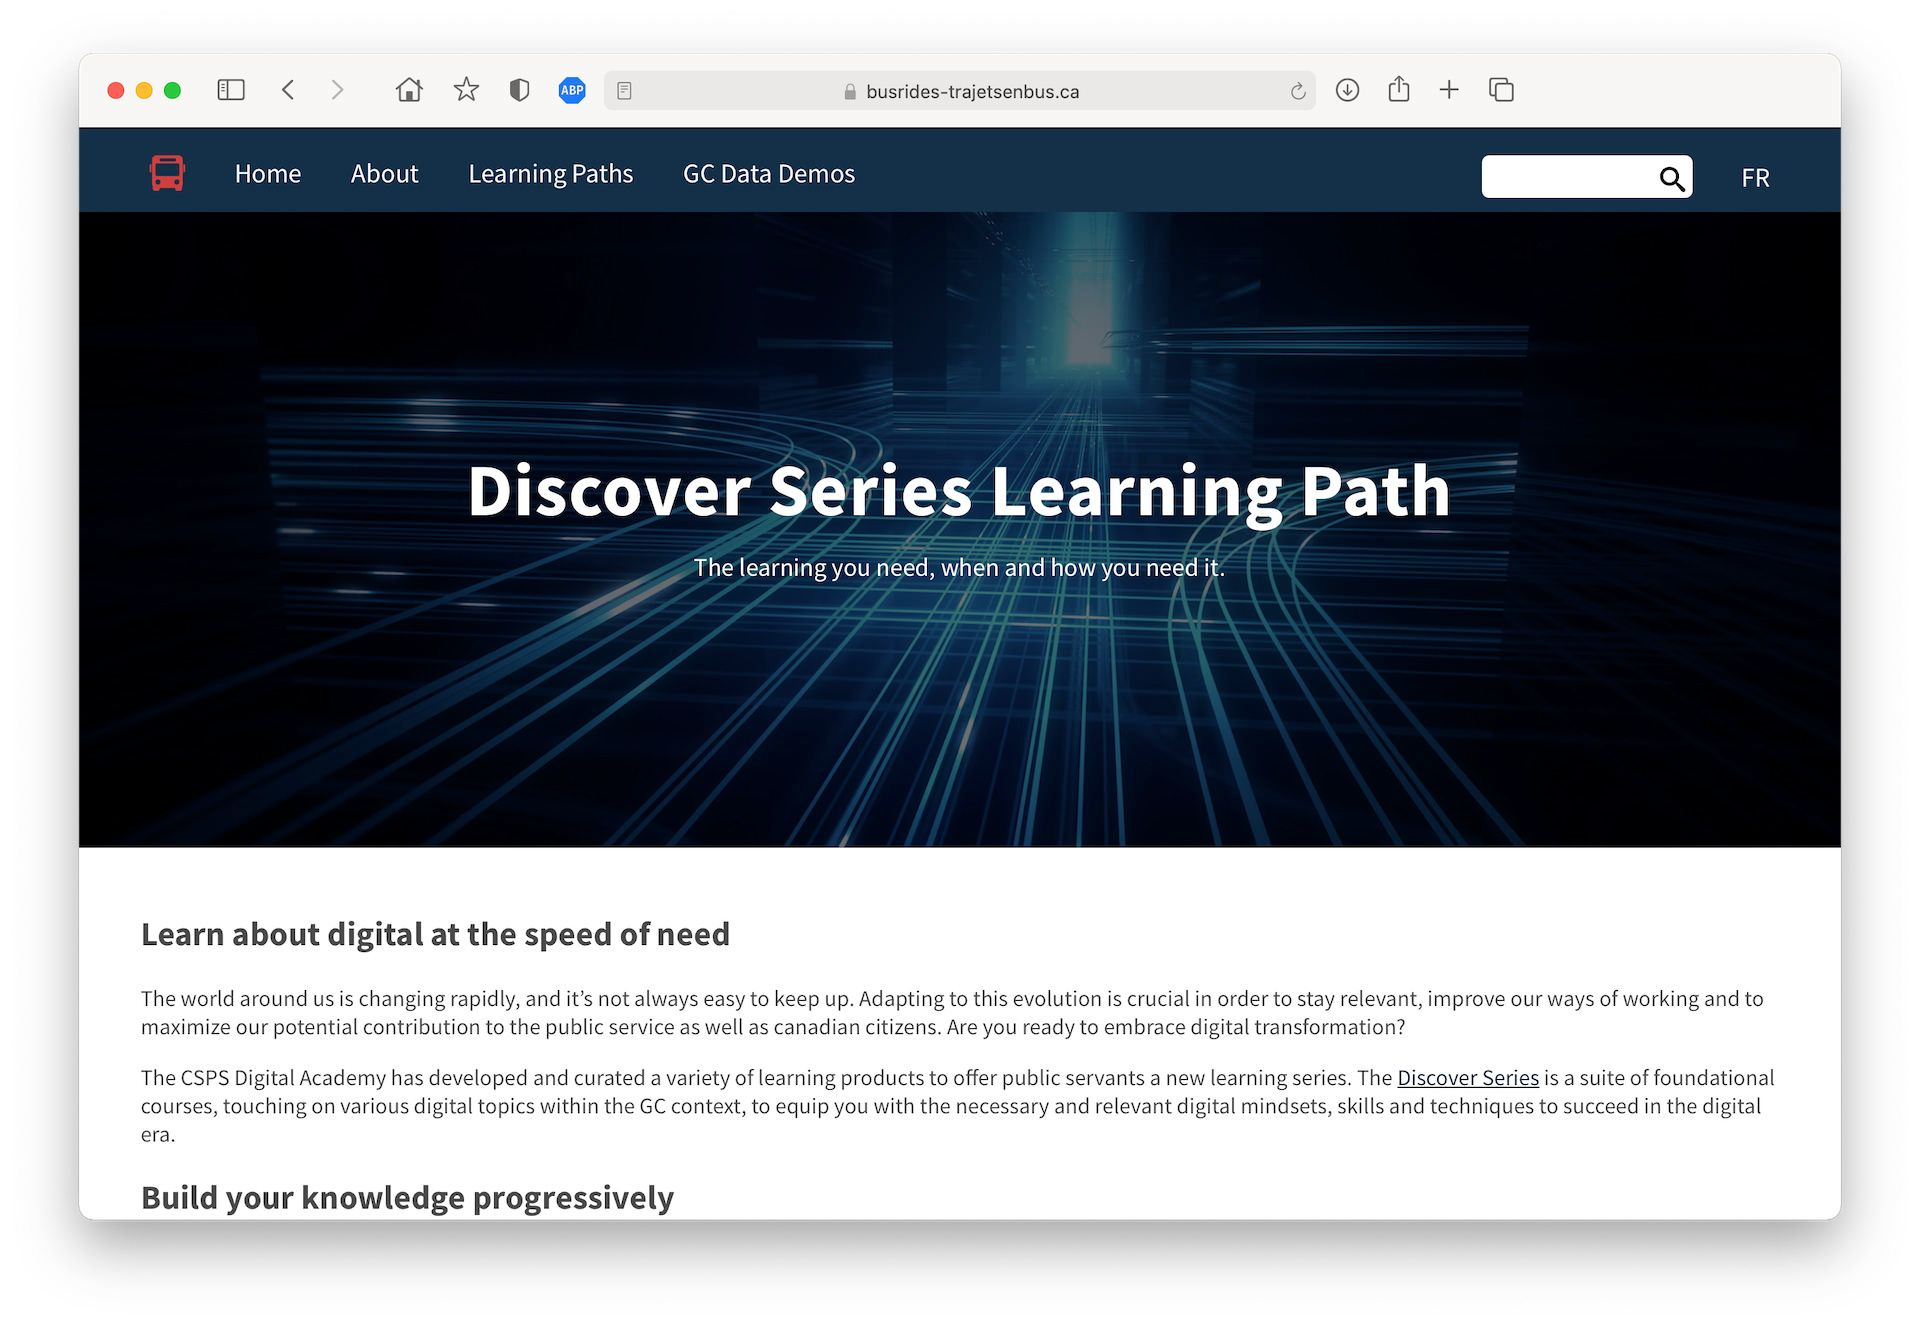 A screenshot of the Learning Paths page